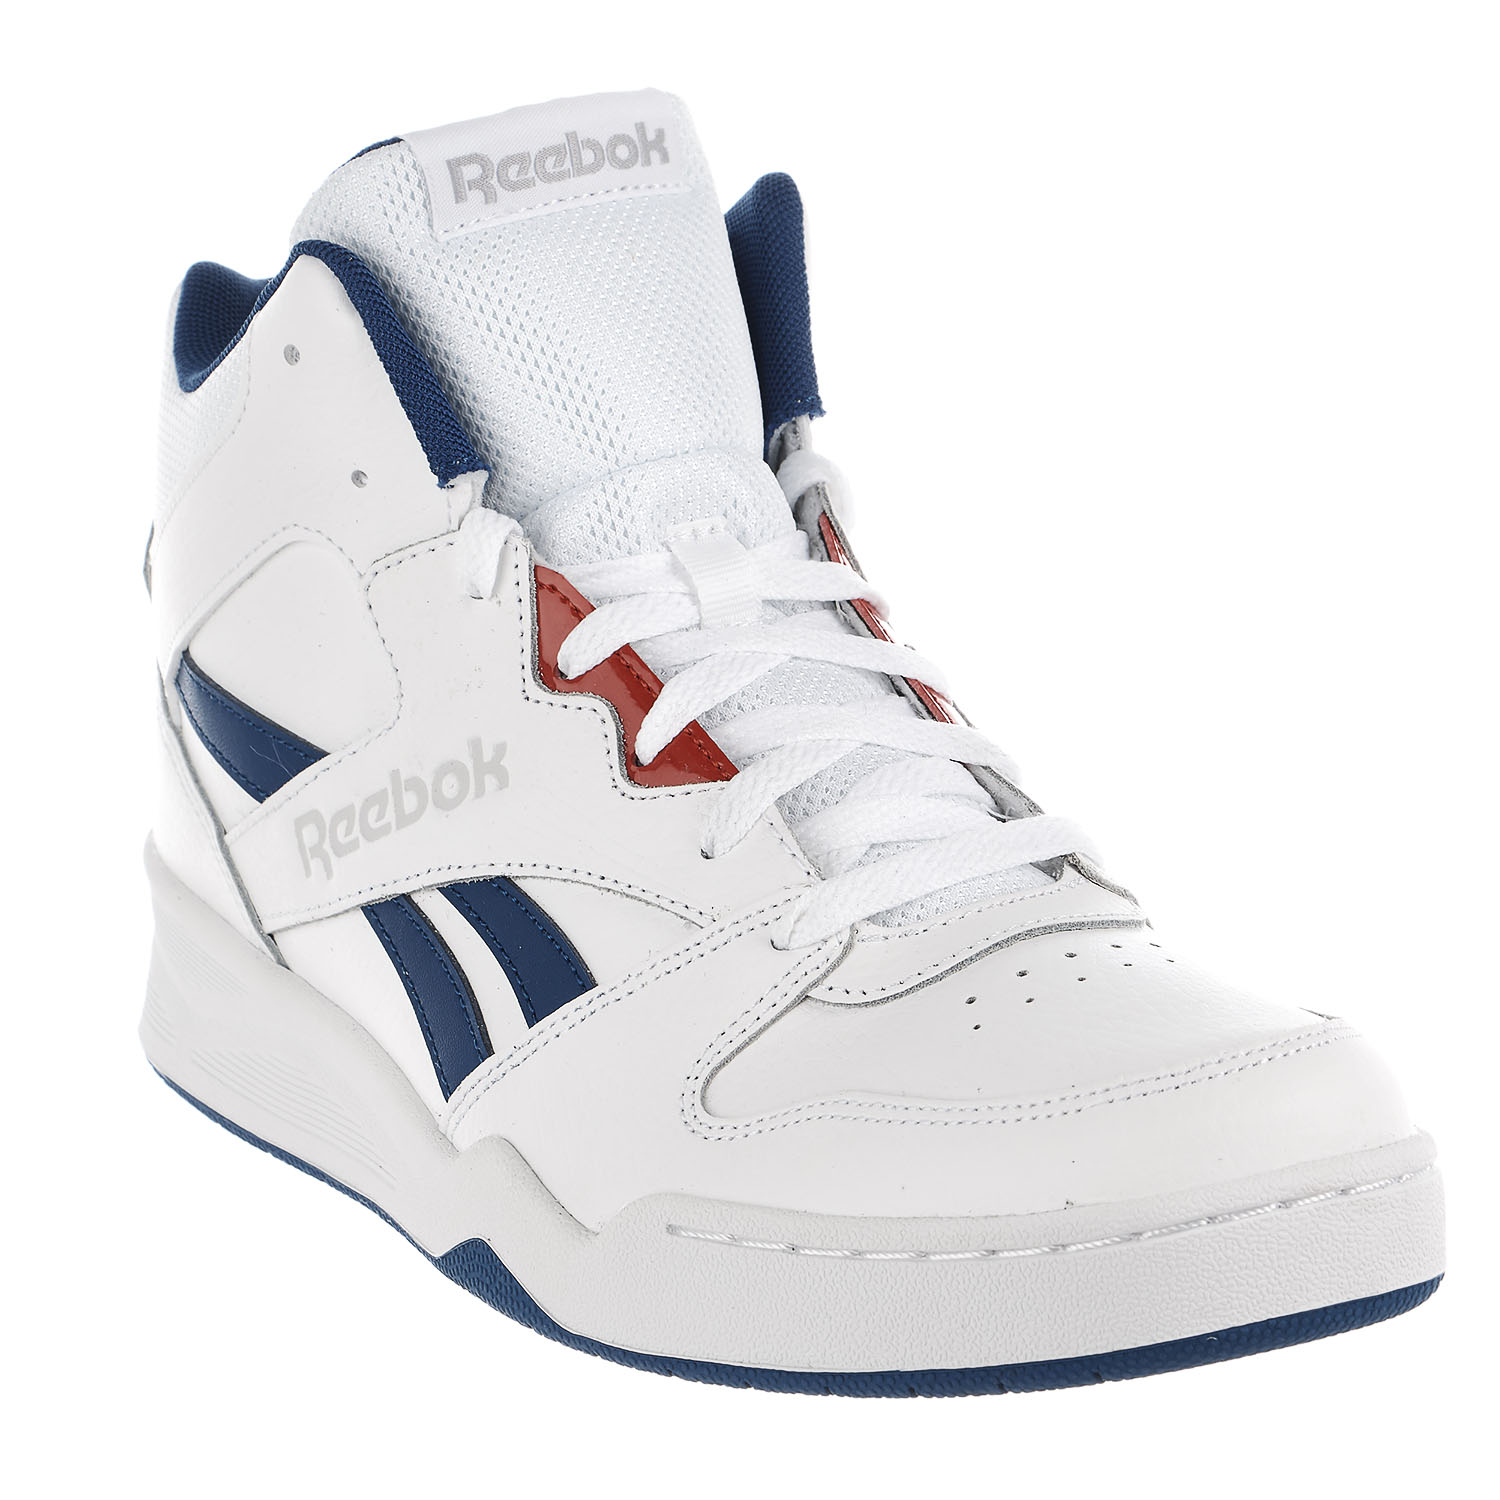 bf08a52659c0 Reebok - Reebok Royal Bb4500 Hi2 Walking Shoe - White Coll Royal Primal -  Mens - 8.5 - Walmart.com